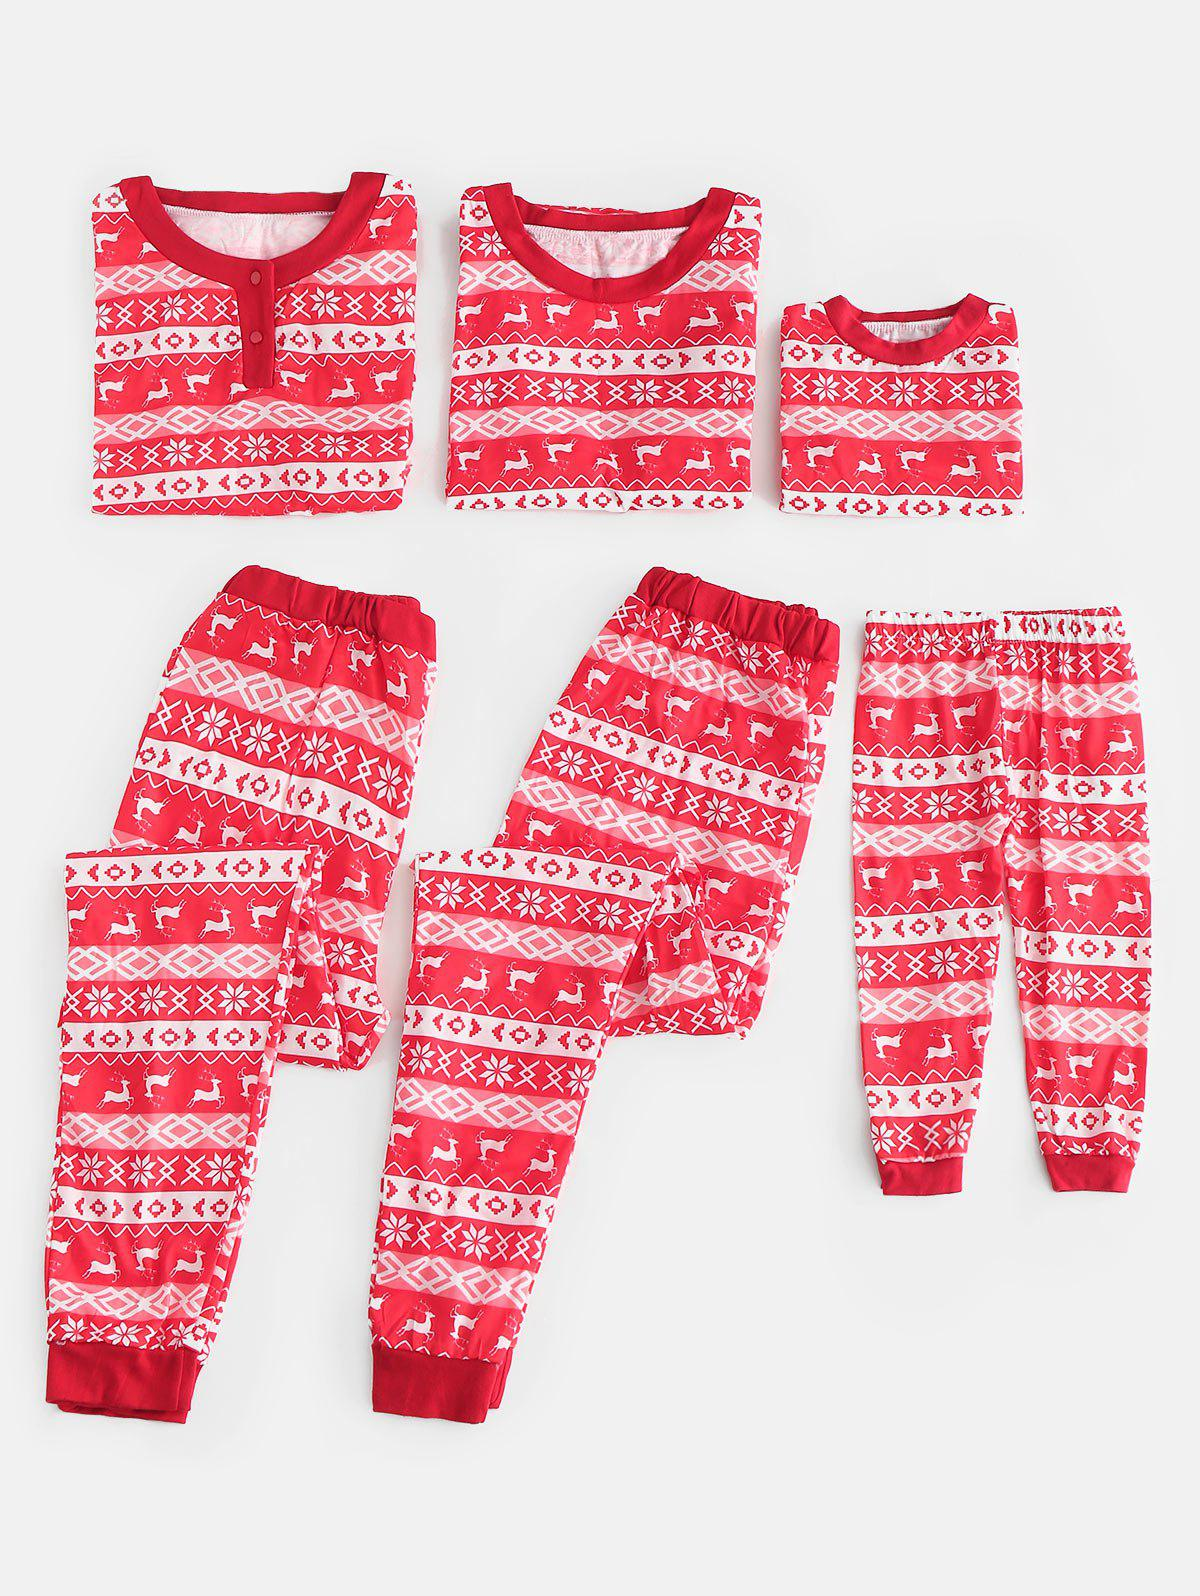 Fashion Full Print Matching Family Christmas Pajamas